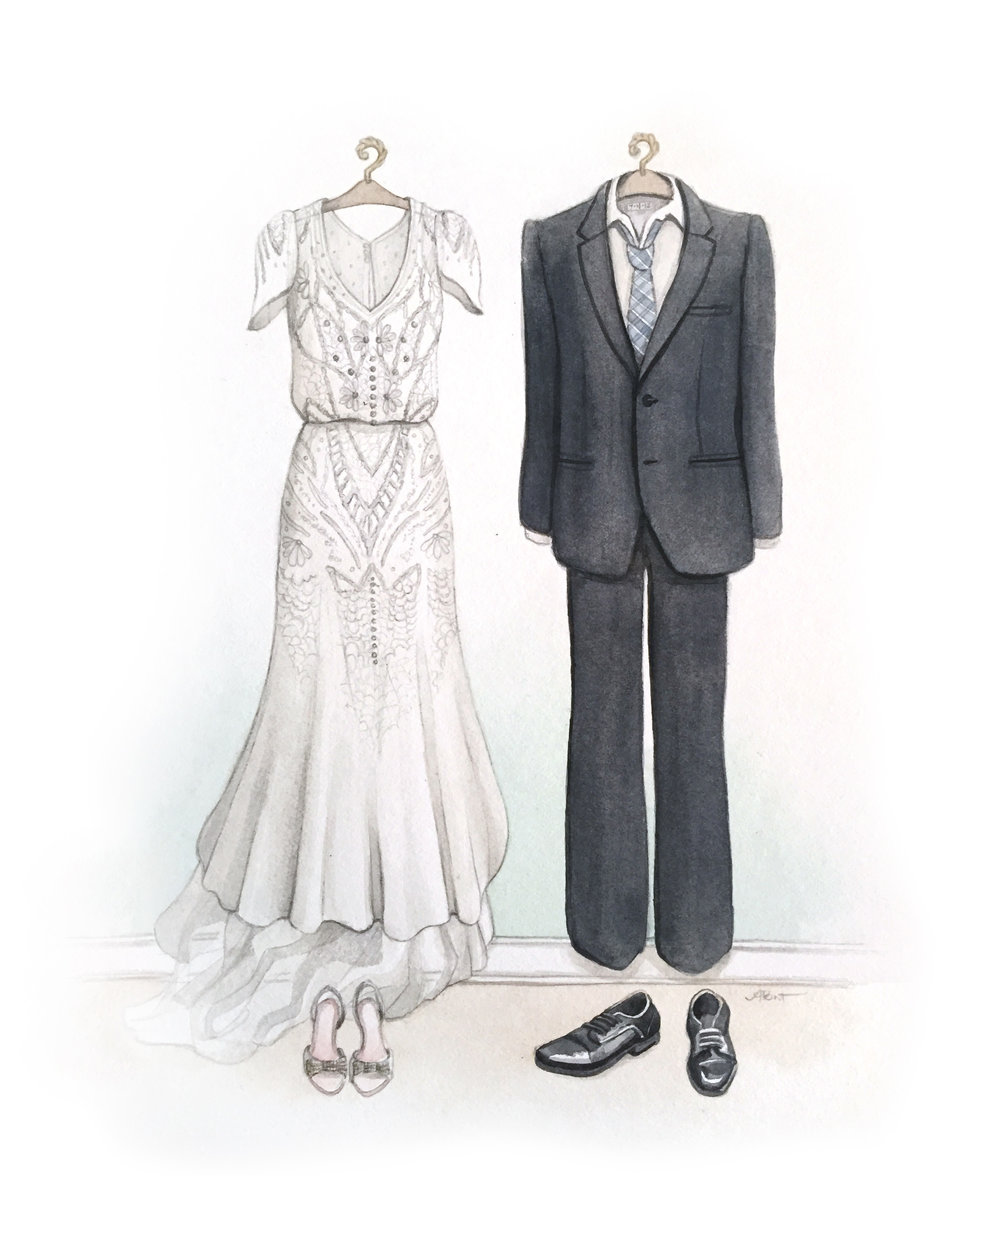 Wedding-Fashion-Illustration-Alison&Wes.jpg